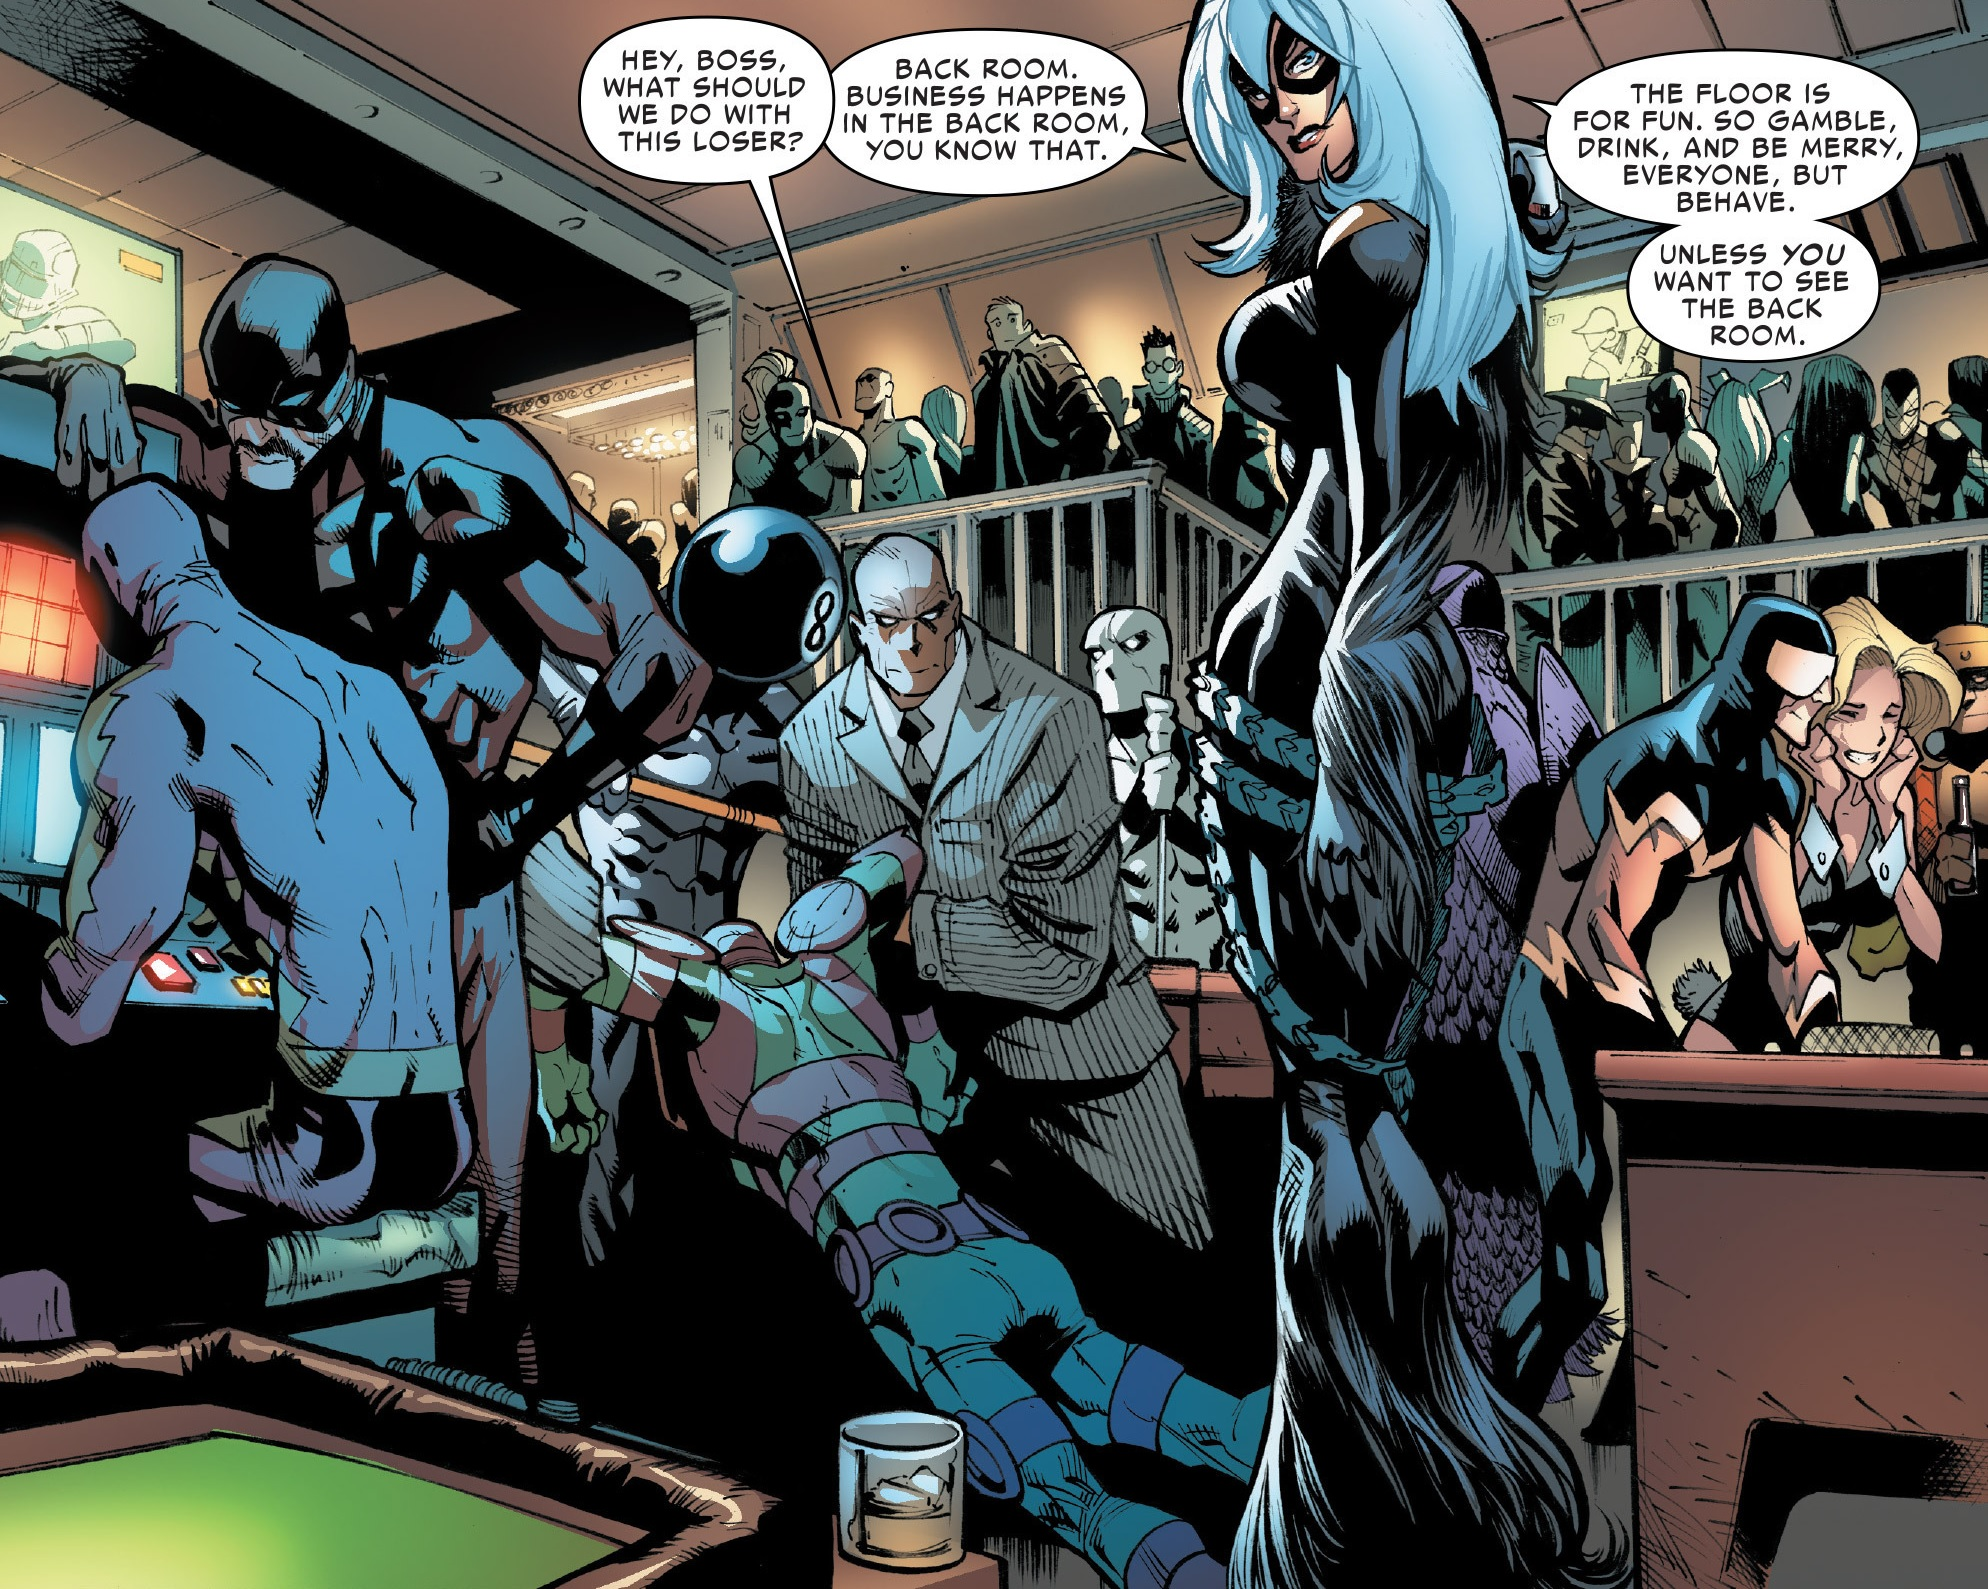 Image Black Cat S Gang Earth 616 From Amazing Spider Man Vol 3